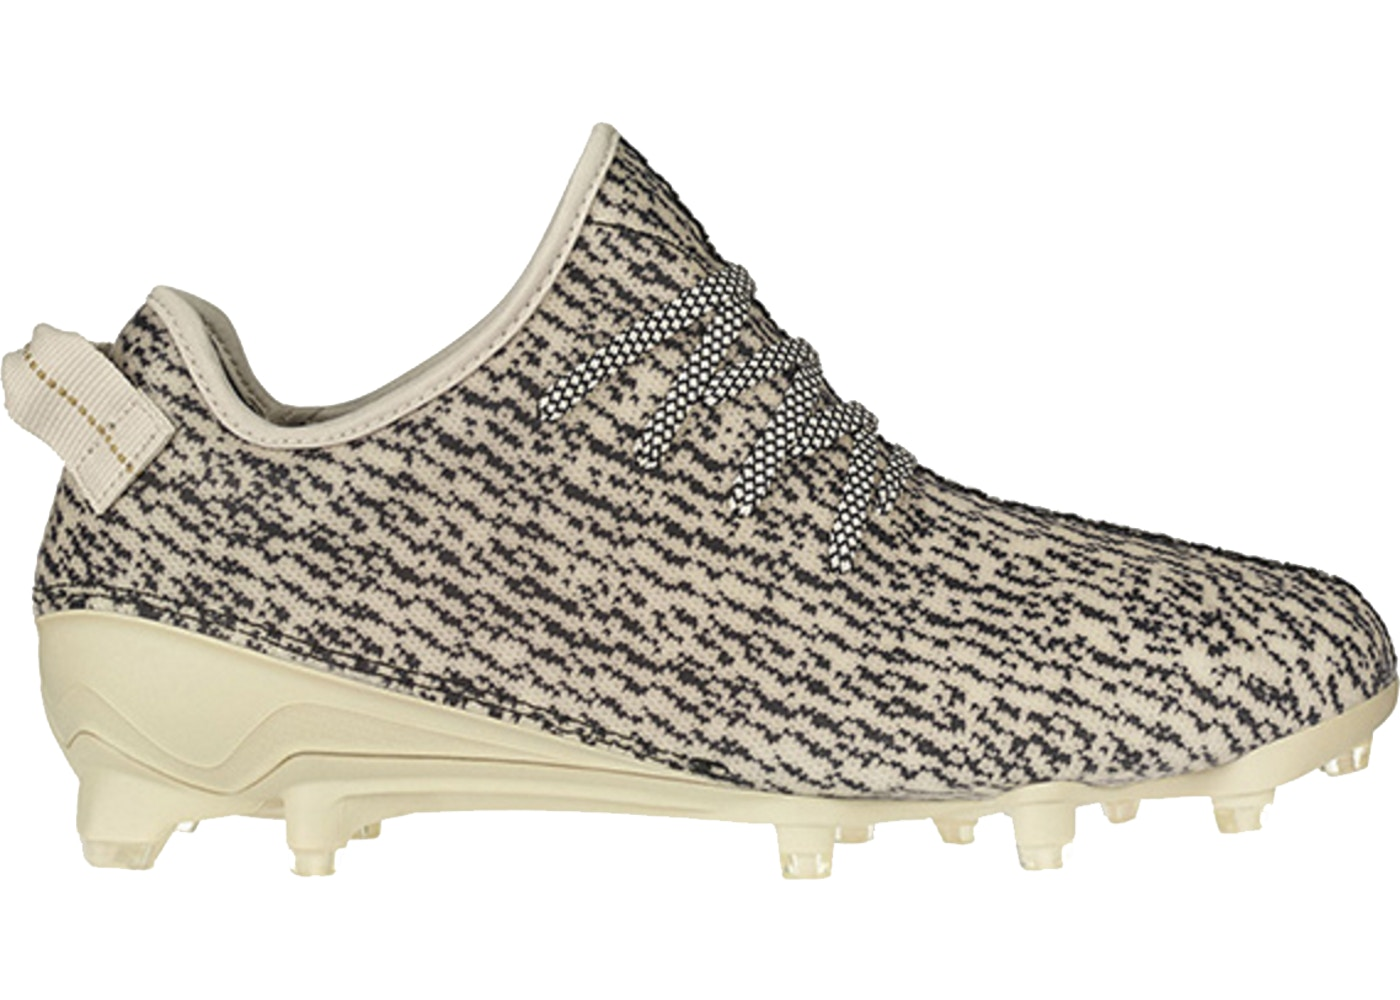 adidas Yeezy 350 Cleat Turtledove - B42410 61efa942c